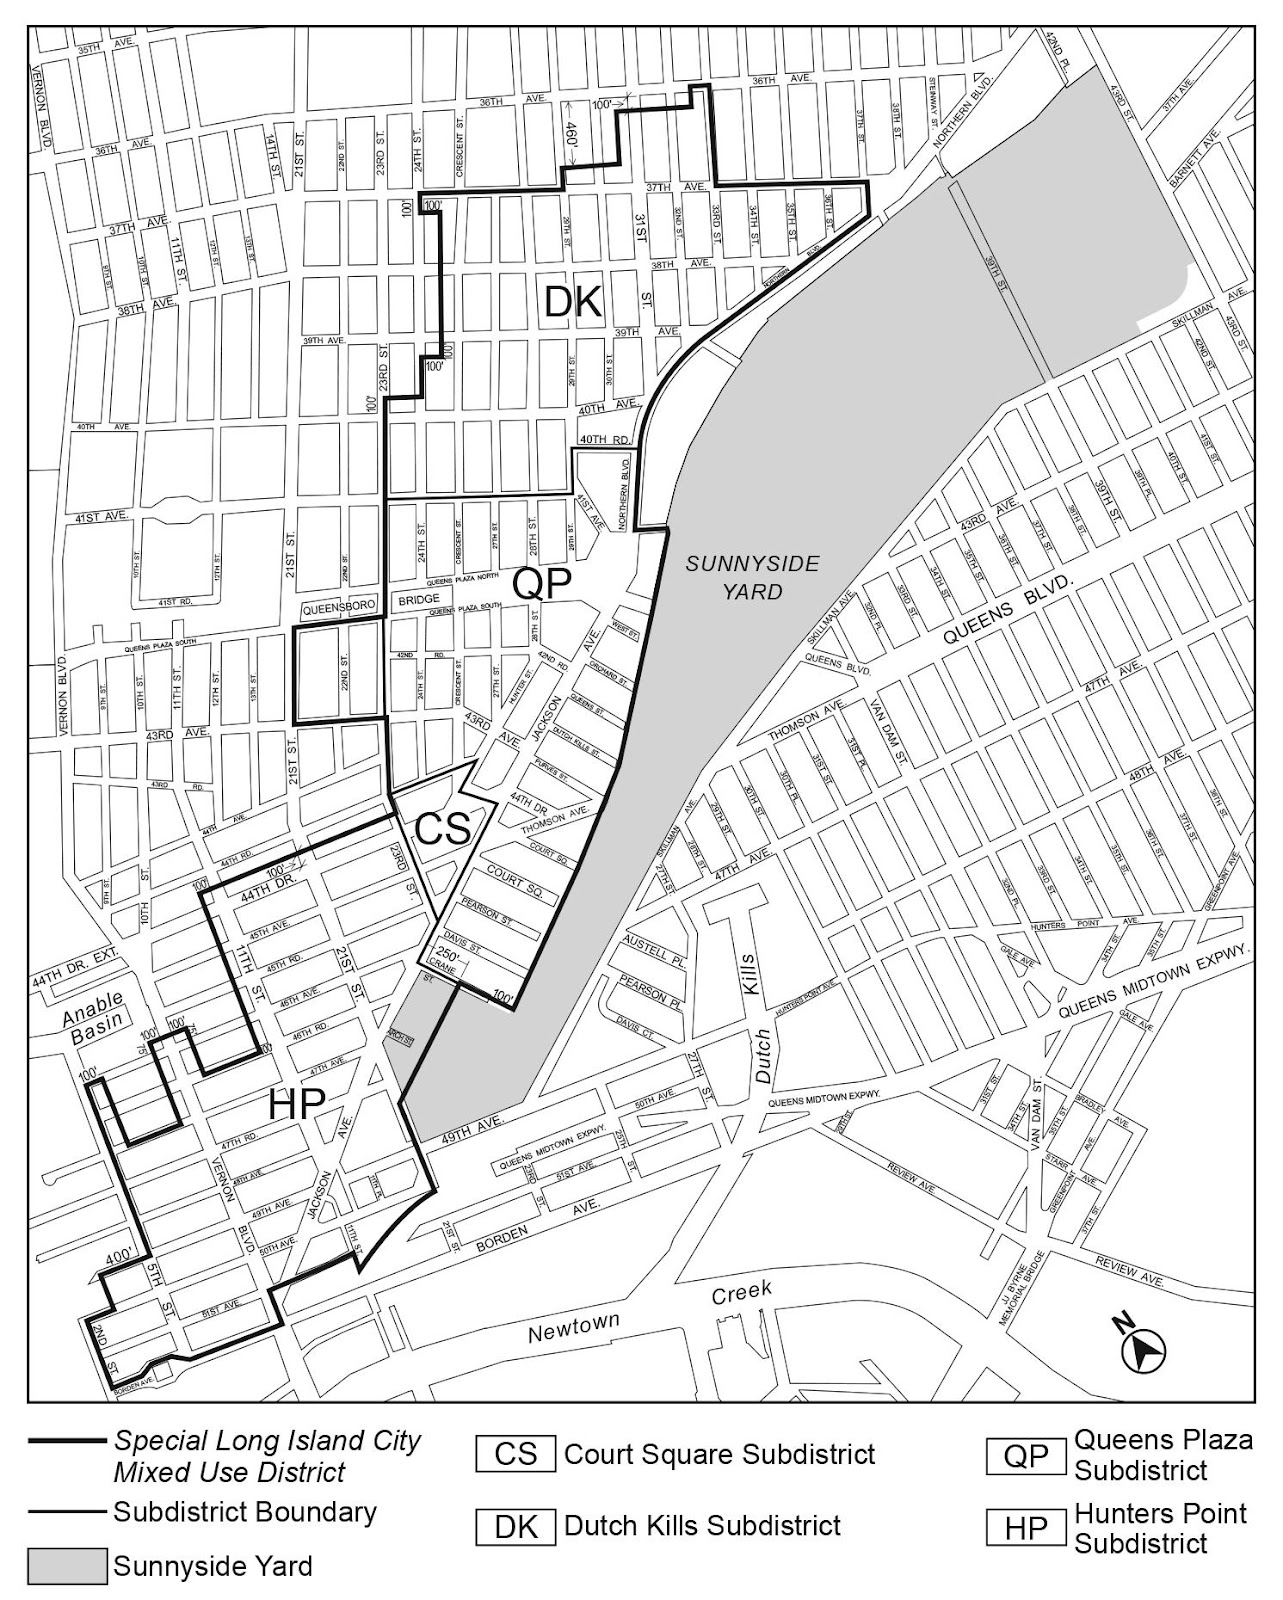 Zoning Resolutions Chapter 7: Special Long Island City Mixed Use District Appendix A.0